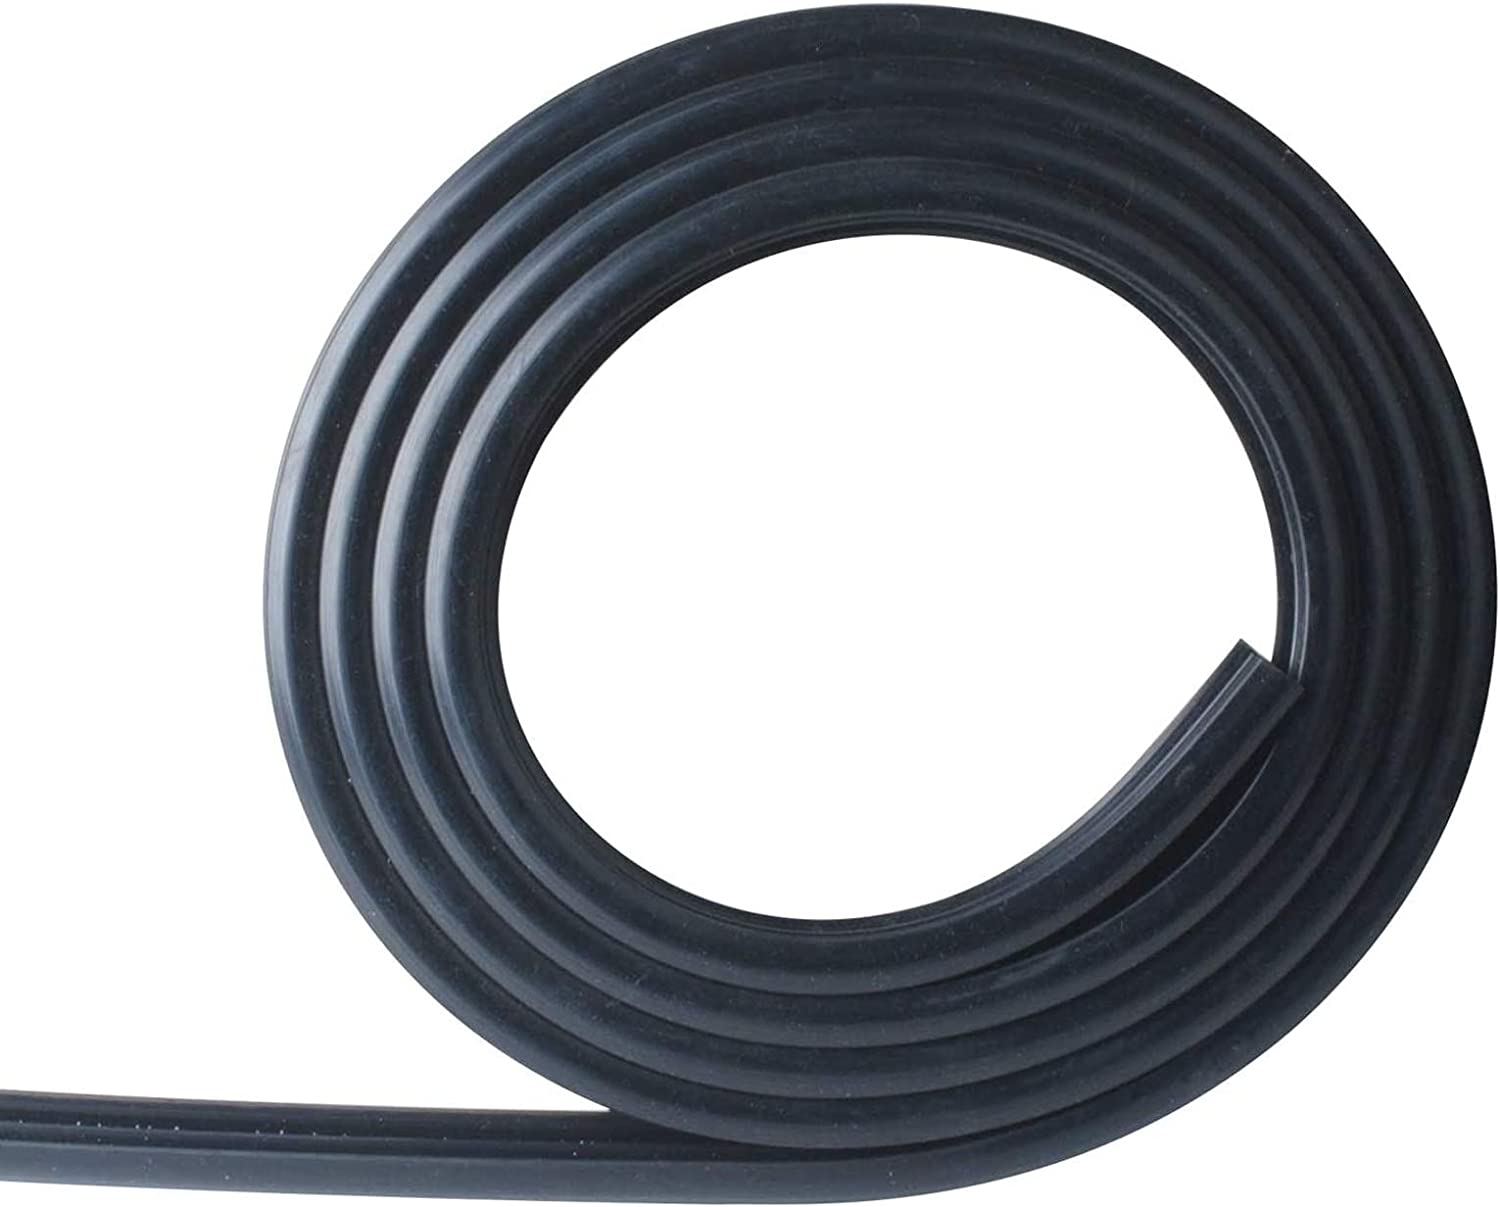 Waddy 8 ft Cooler Lid Gasket Replacement Compatible with Yeti RTIC 70qt or 110qt Coolers